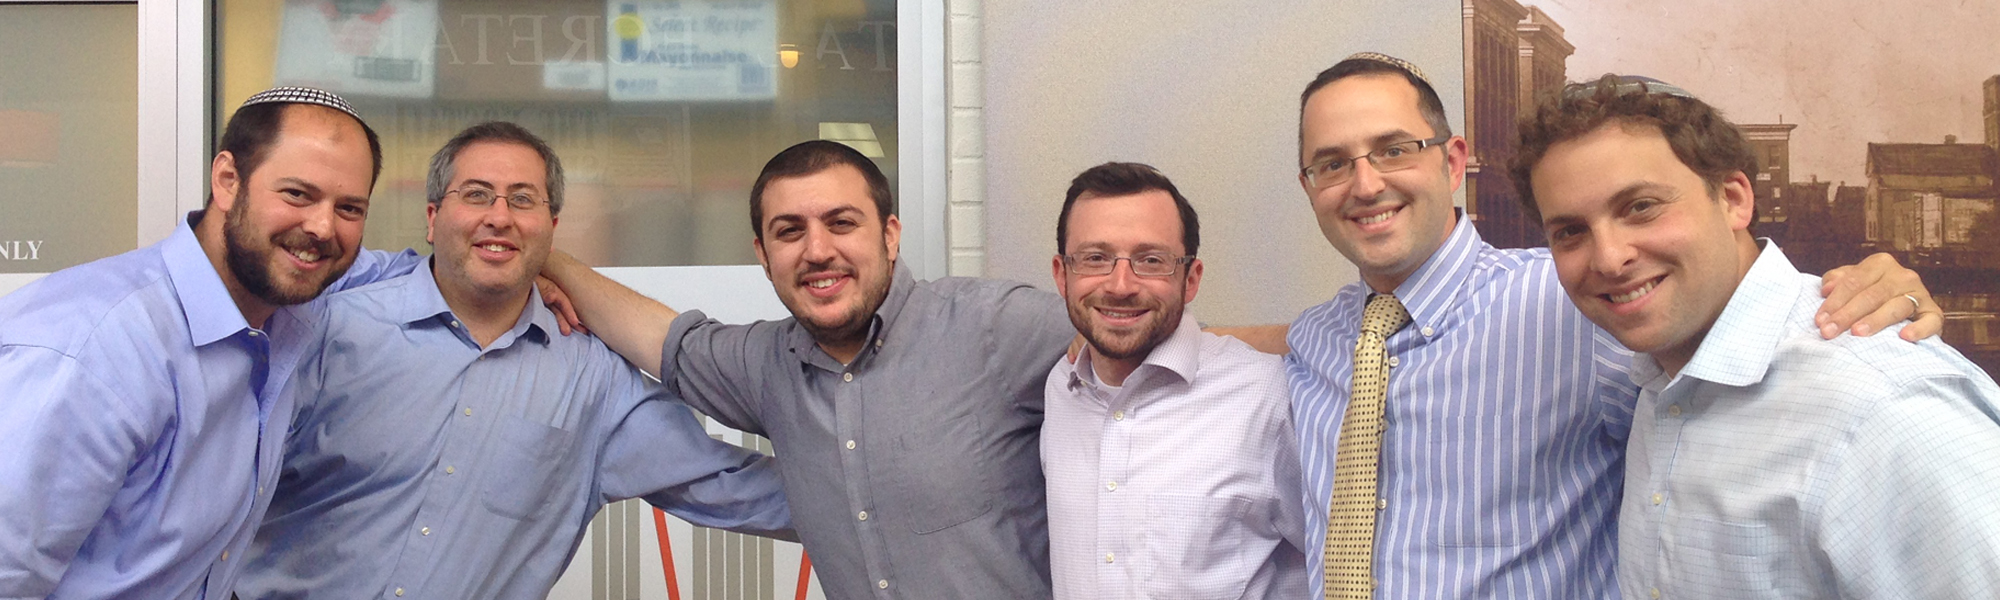 Rabbinic Placement - Chovevei Torah, Setting the standard in rabbinic leadership